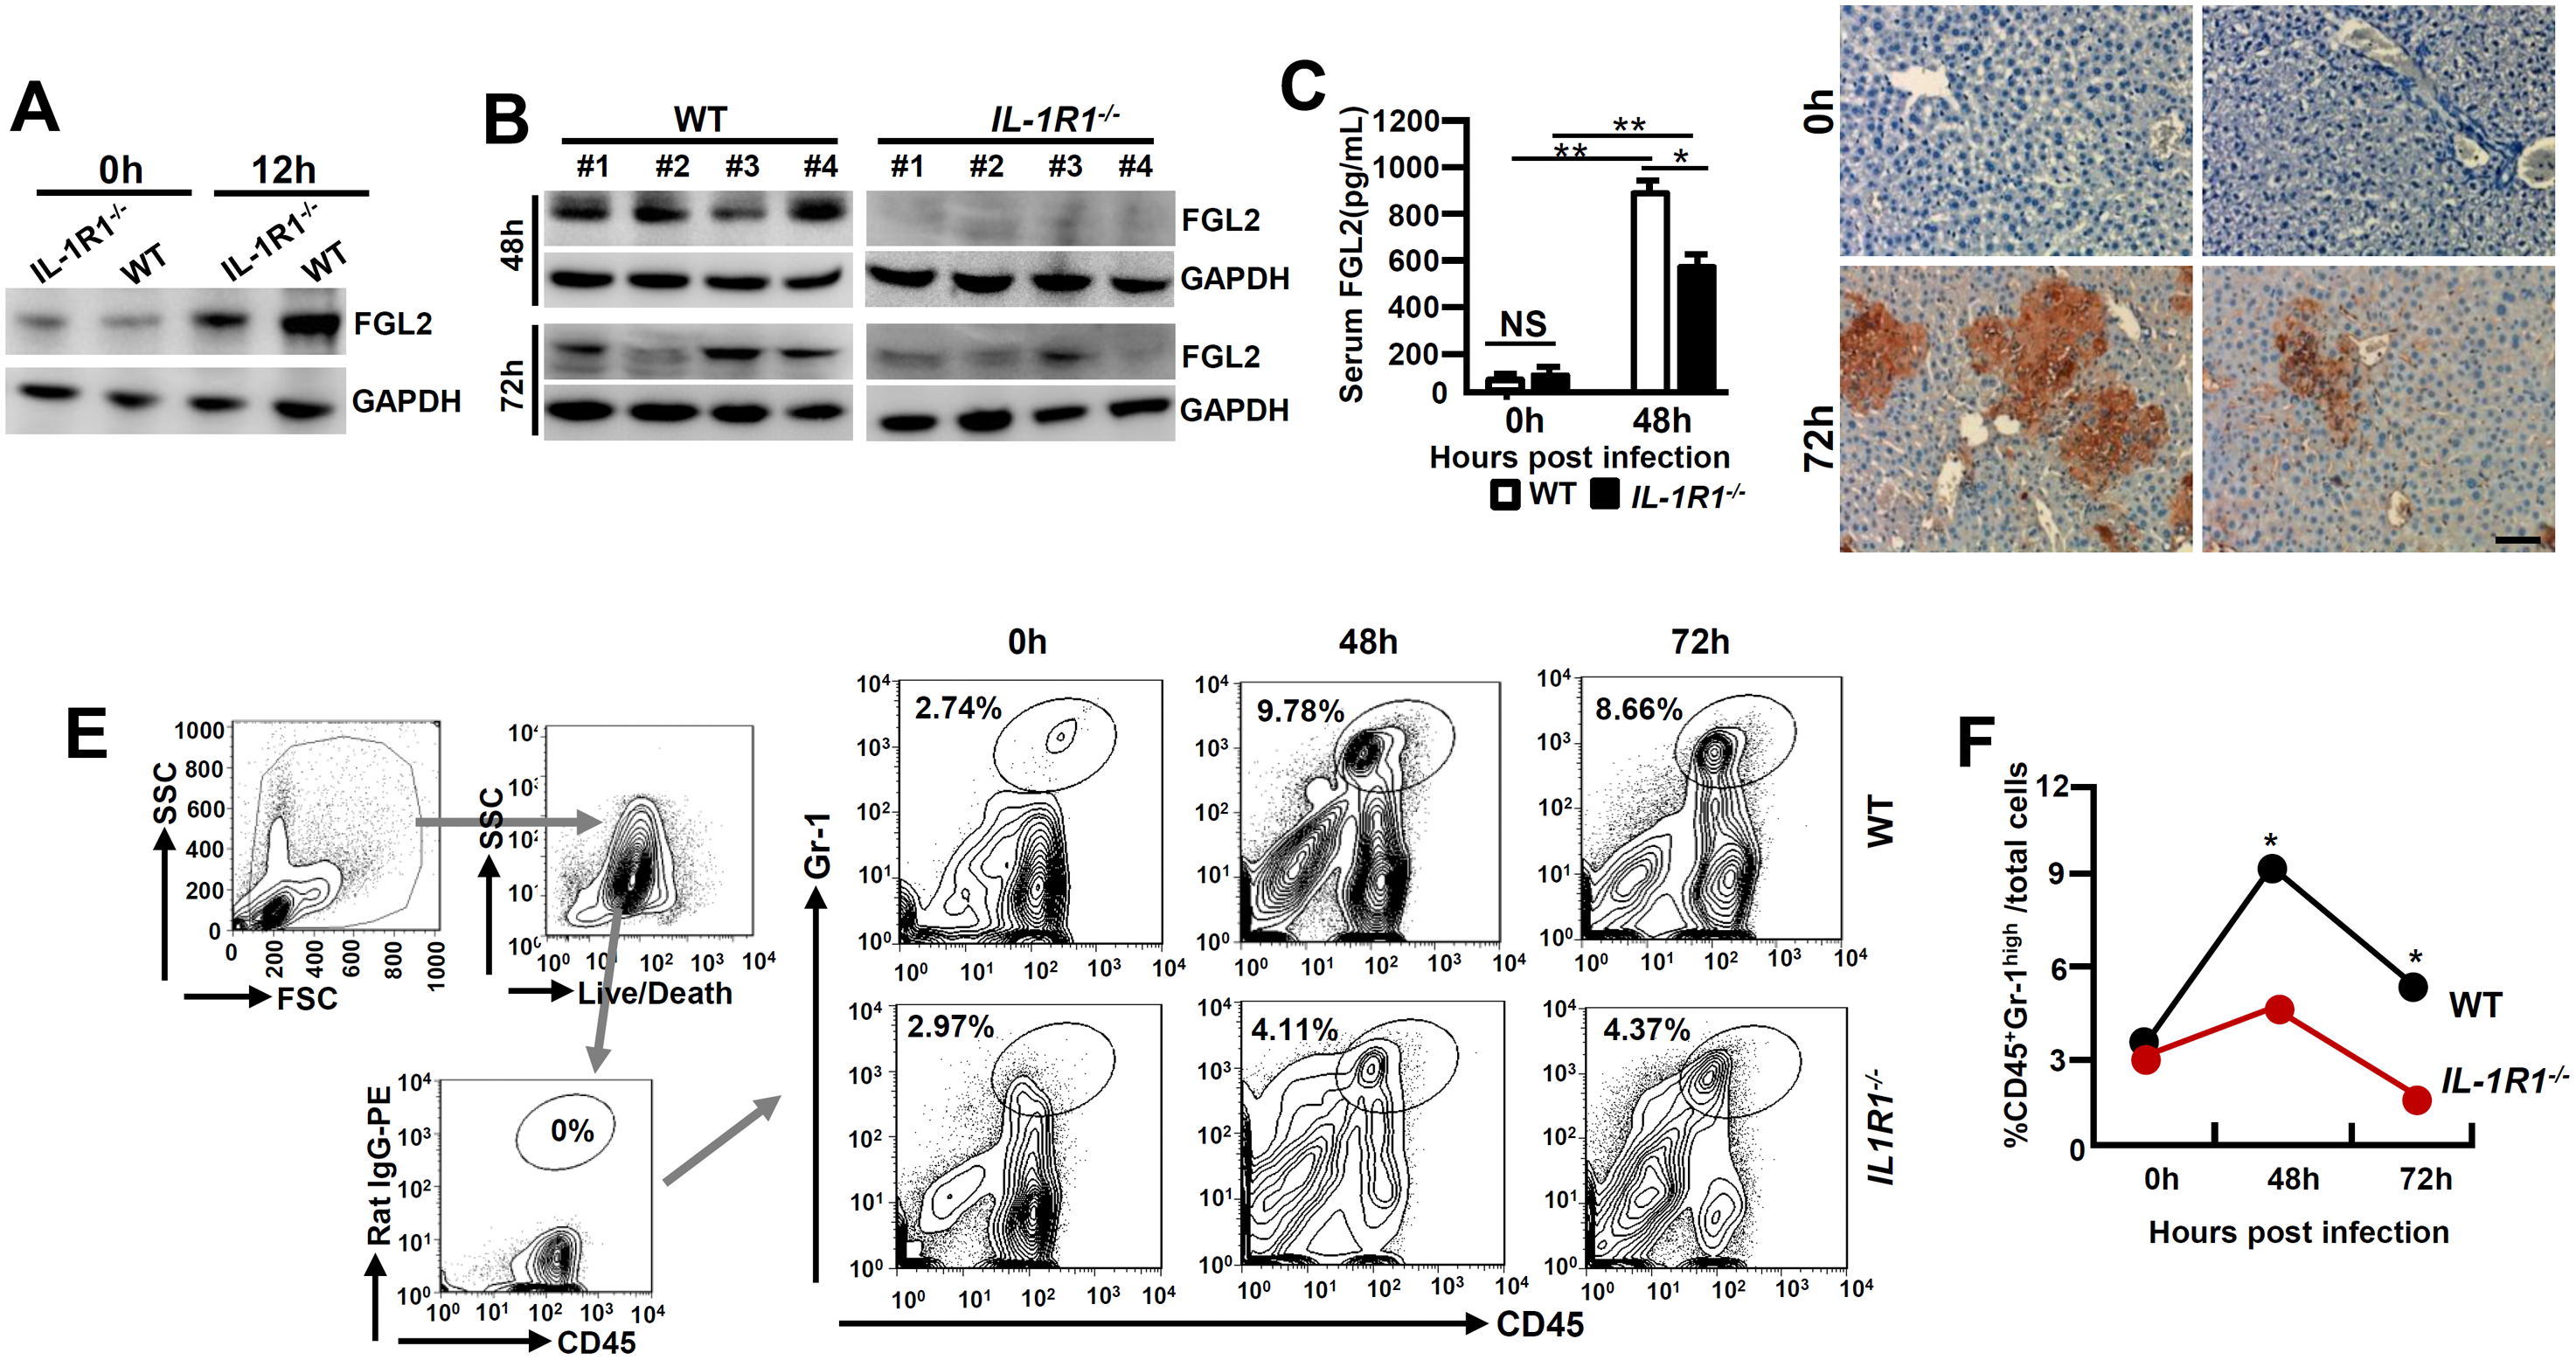 MHV-3 fails to induce FGL2 production and neutrophil infiltration in the livers of <i>IL-1R1</i><sup><i>-/-</i></sup> mice.